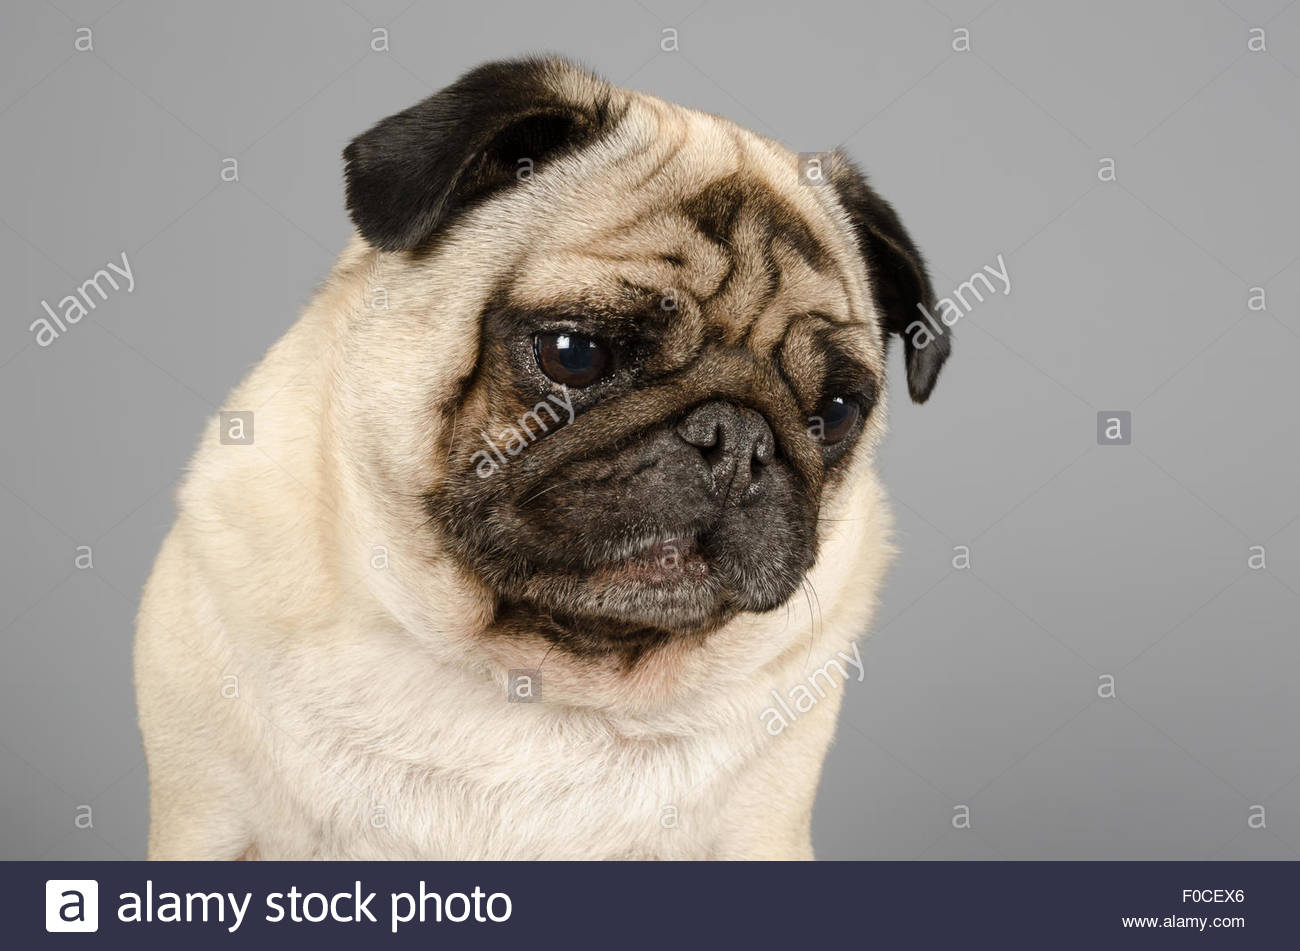 George the pug. - Stock Image